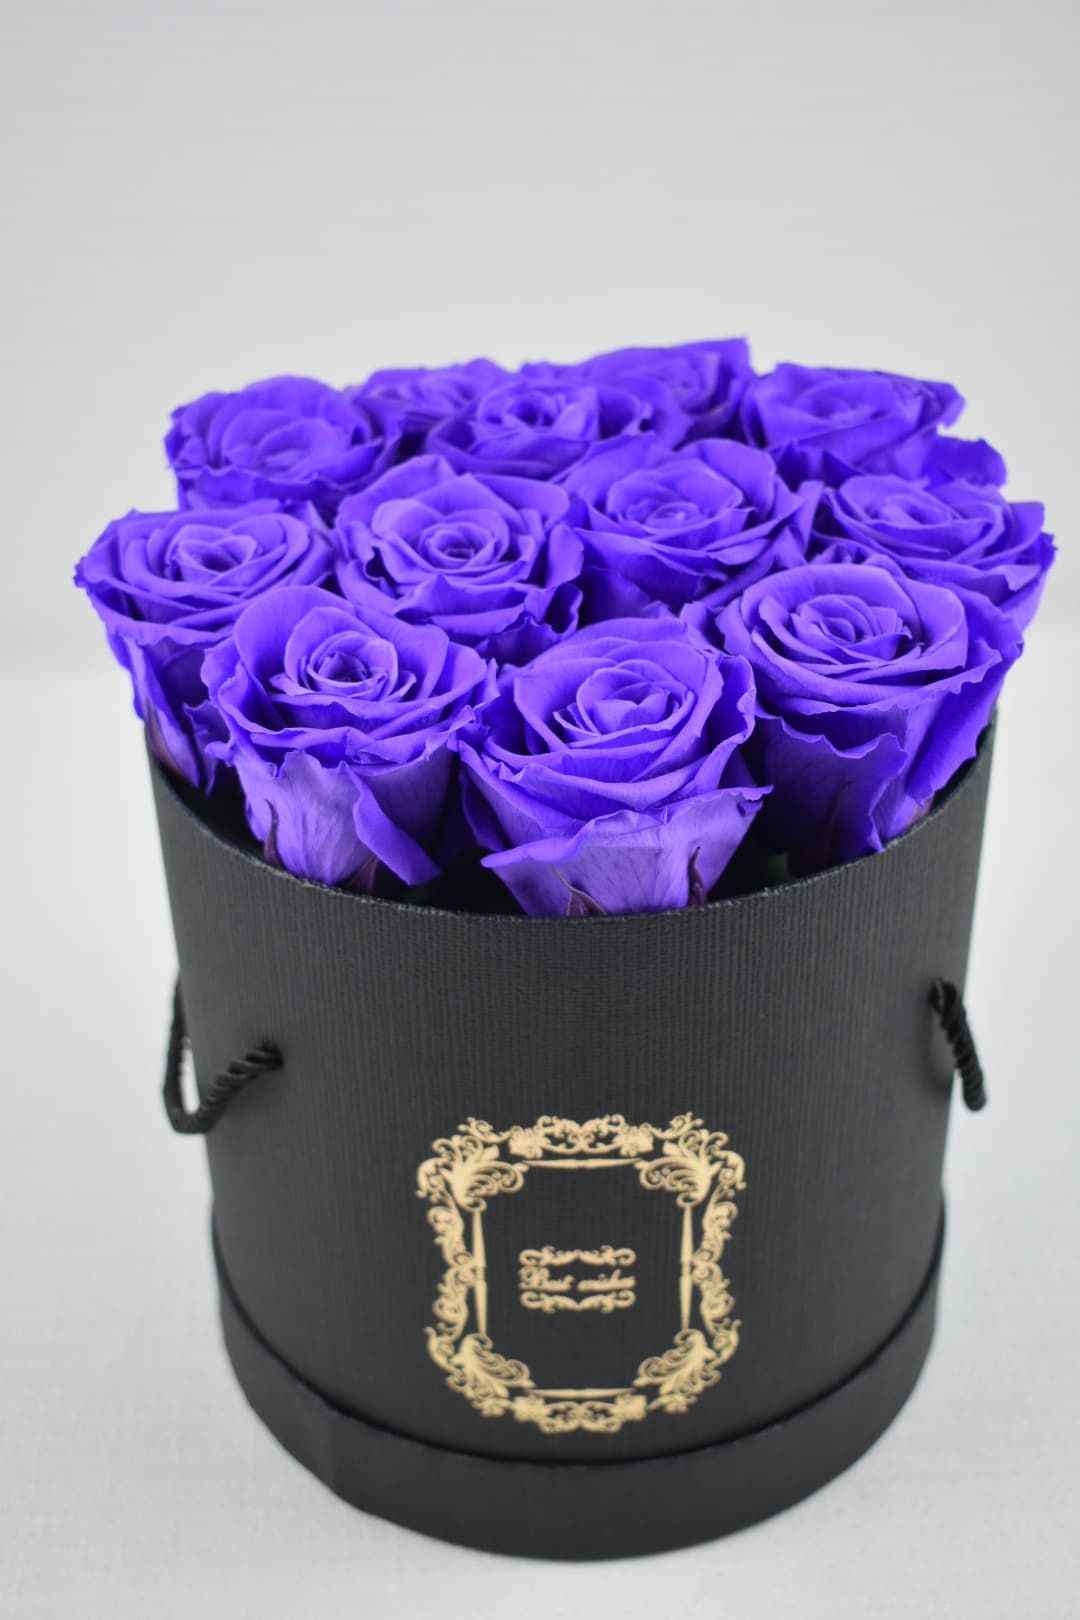 Send the Everlasting Roses purple Roses in a black box